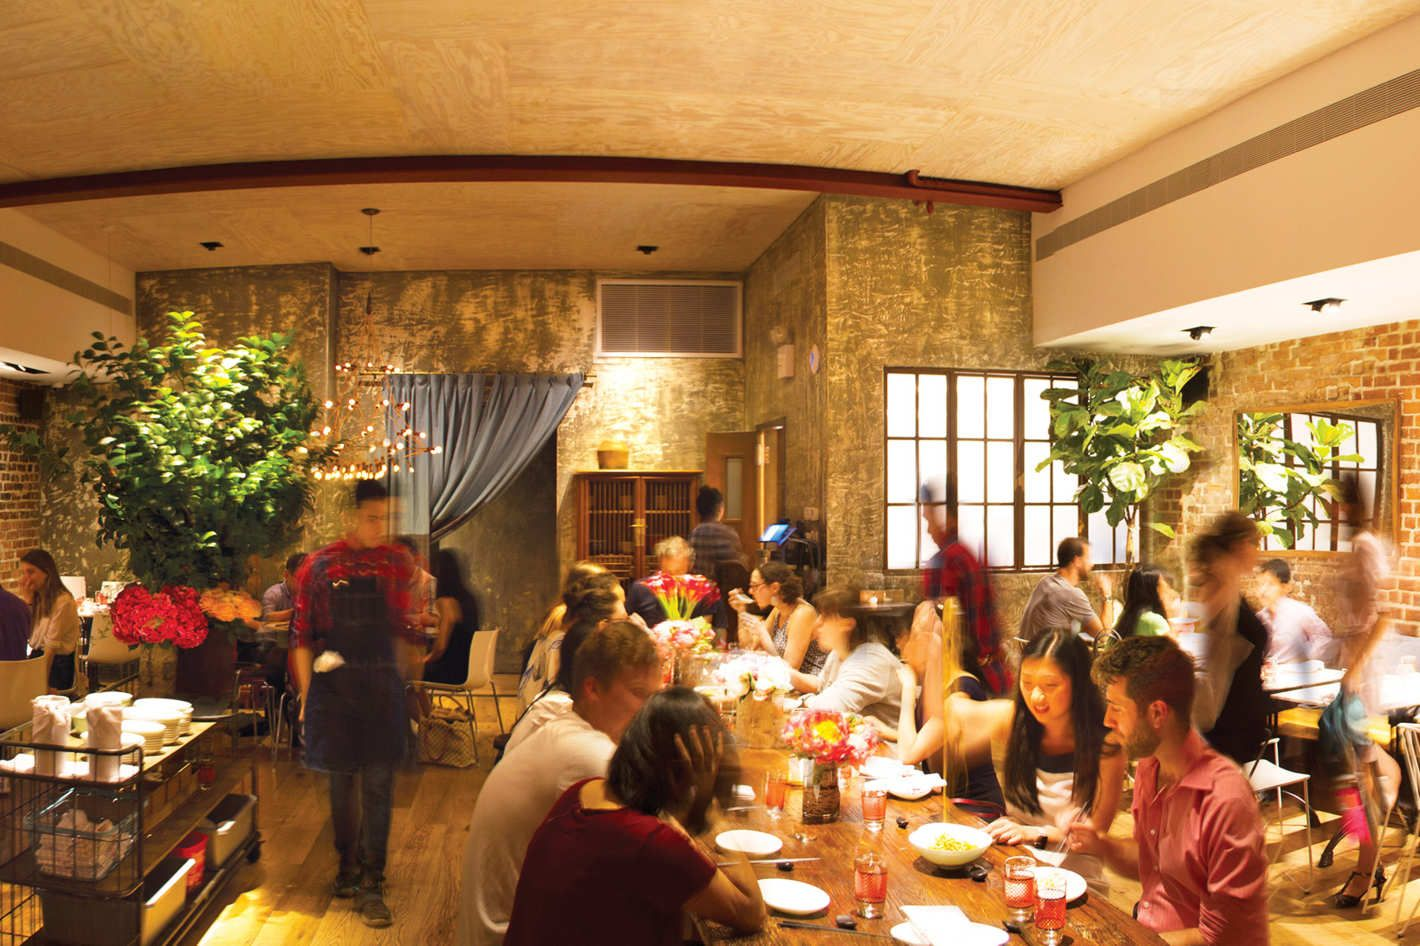 New York Restaurant Review Hao Noodle and Tea by Madam